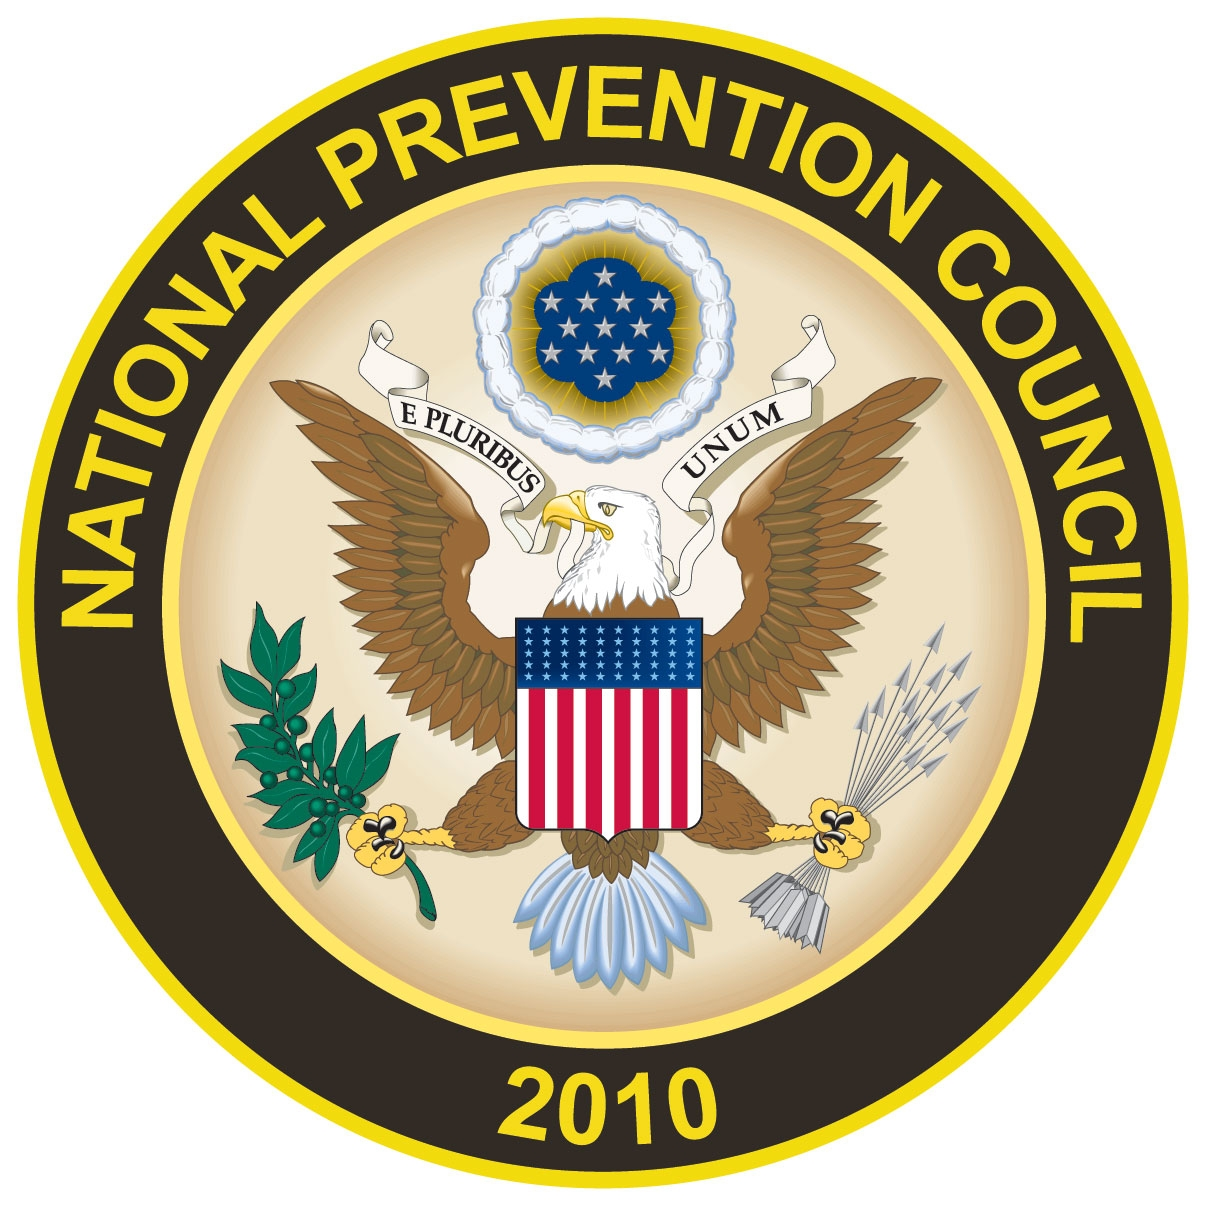 National-Prevention-Council Seal LOGO 300dpi.JPG